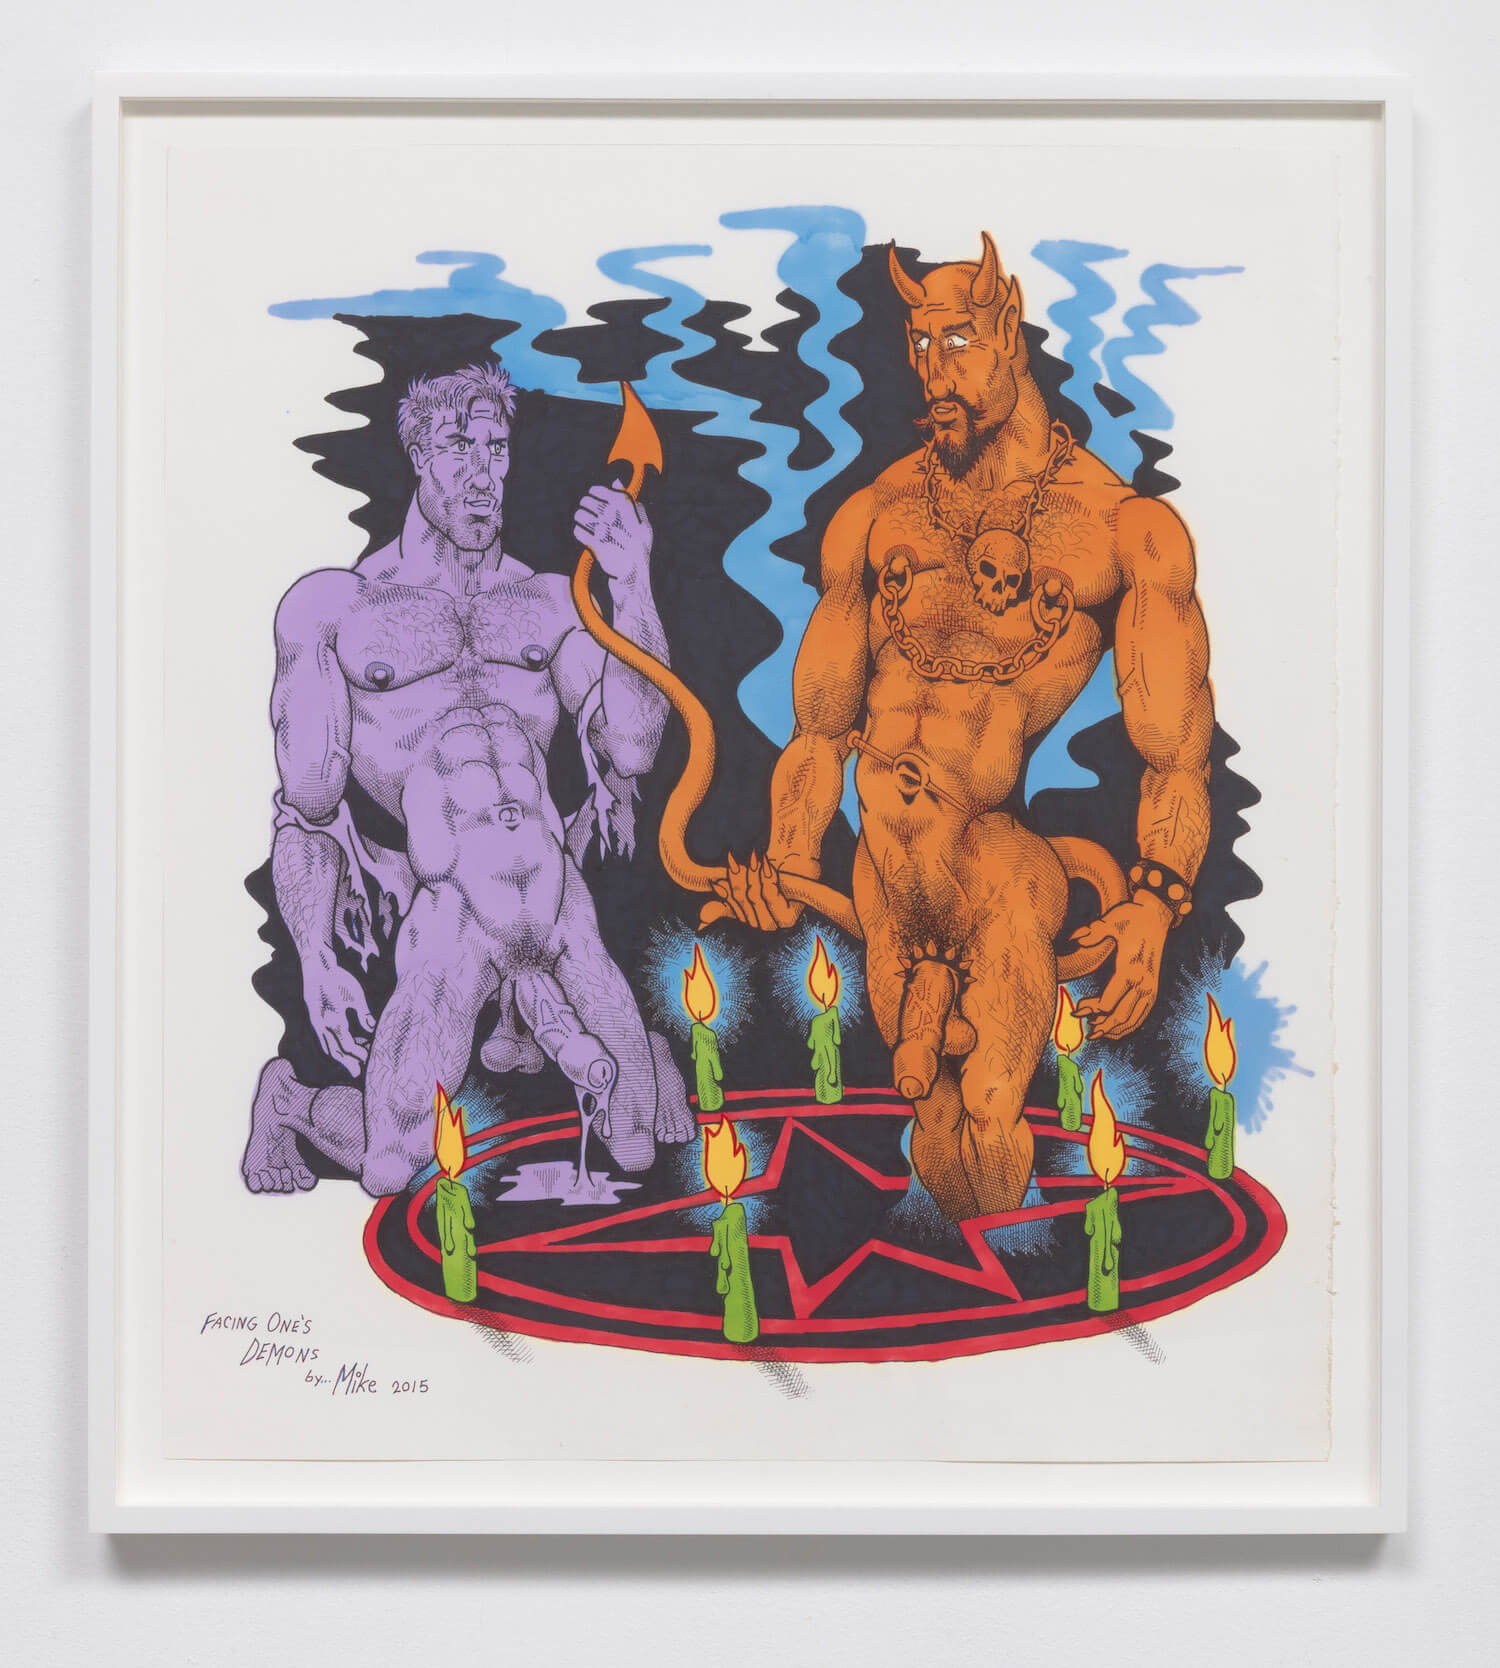 Kuchar, Facing One's Demons, 2015 (MK 15.003) A